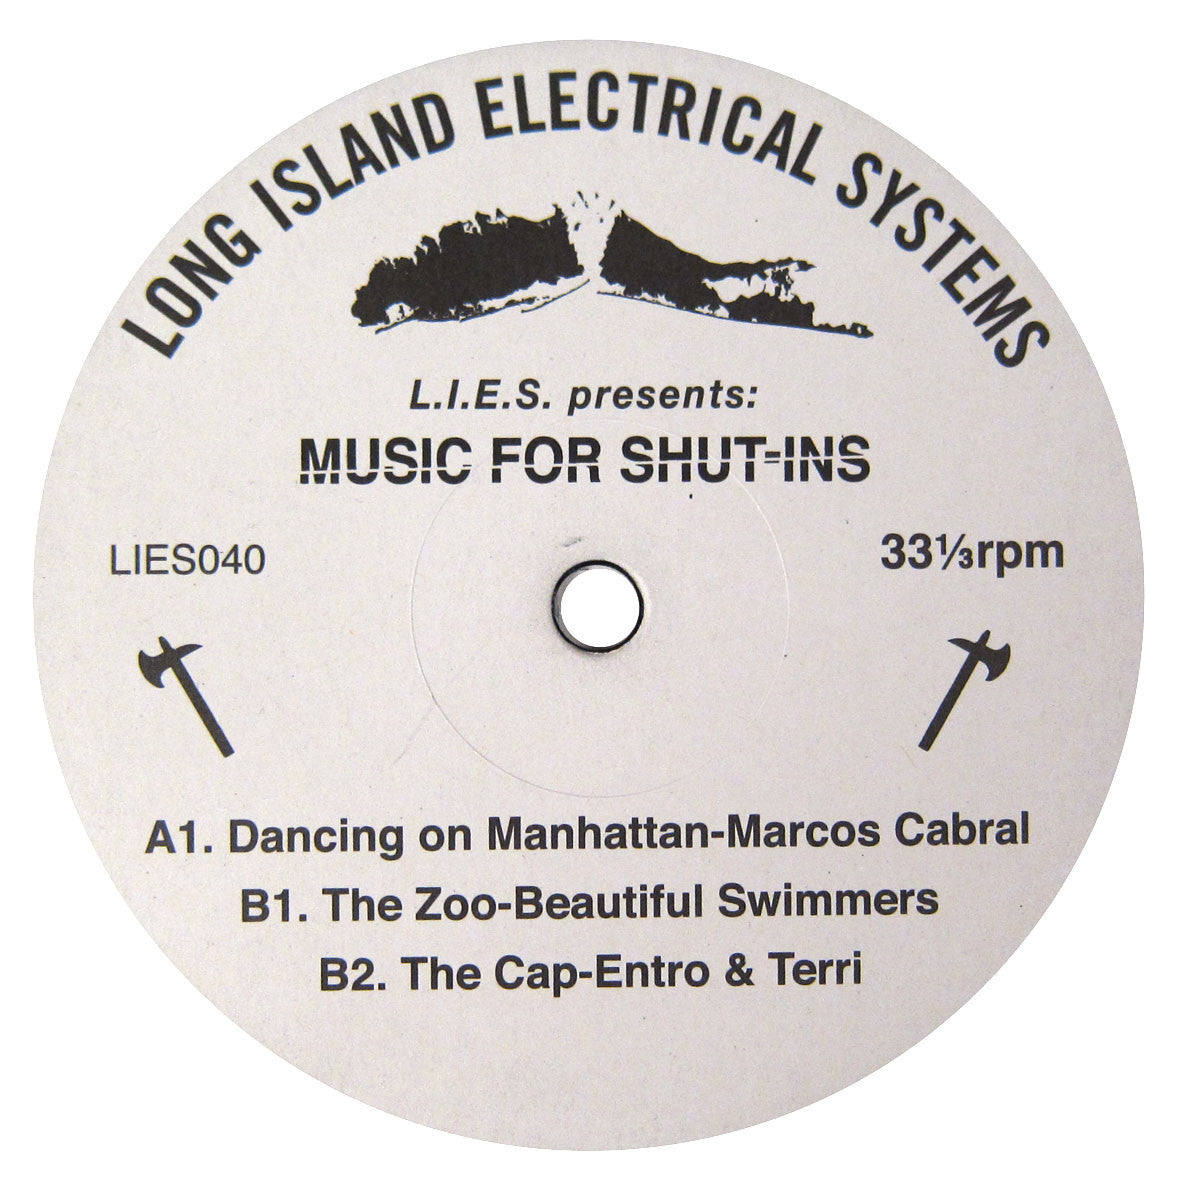 Long Island Electrical Systems: Music For Shut-Ins Sampler (Marcos Cabral, Beautiful Swimmers) Vinyl 12""